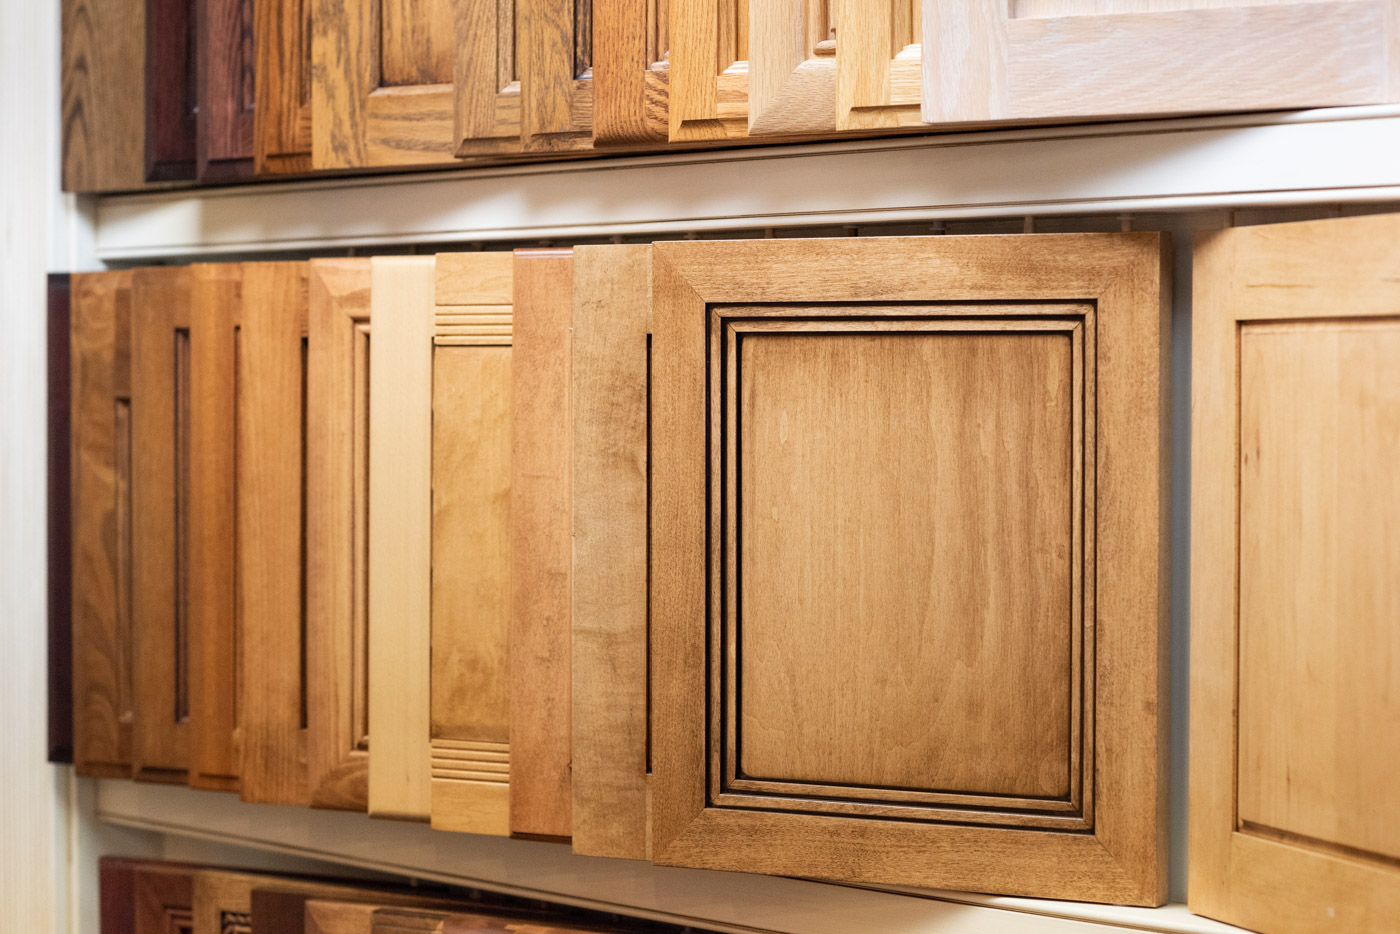 Sligh Cabinets Paso Robles Showroom Kitchen Cabinets WEB-27.JPG